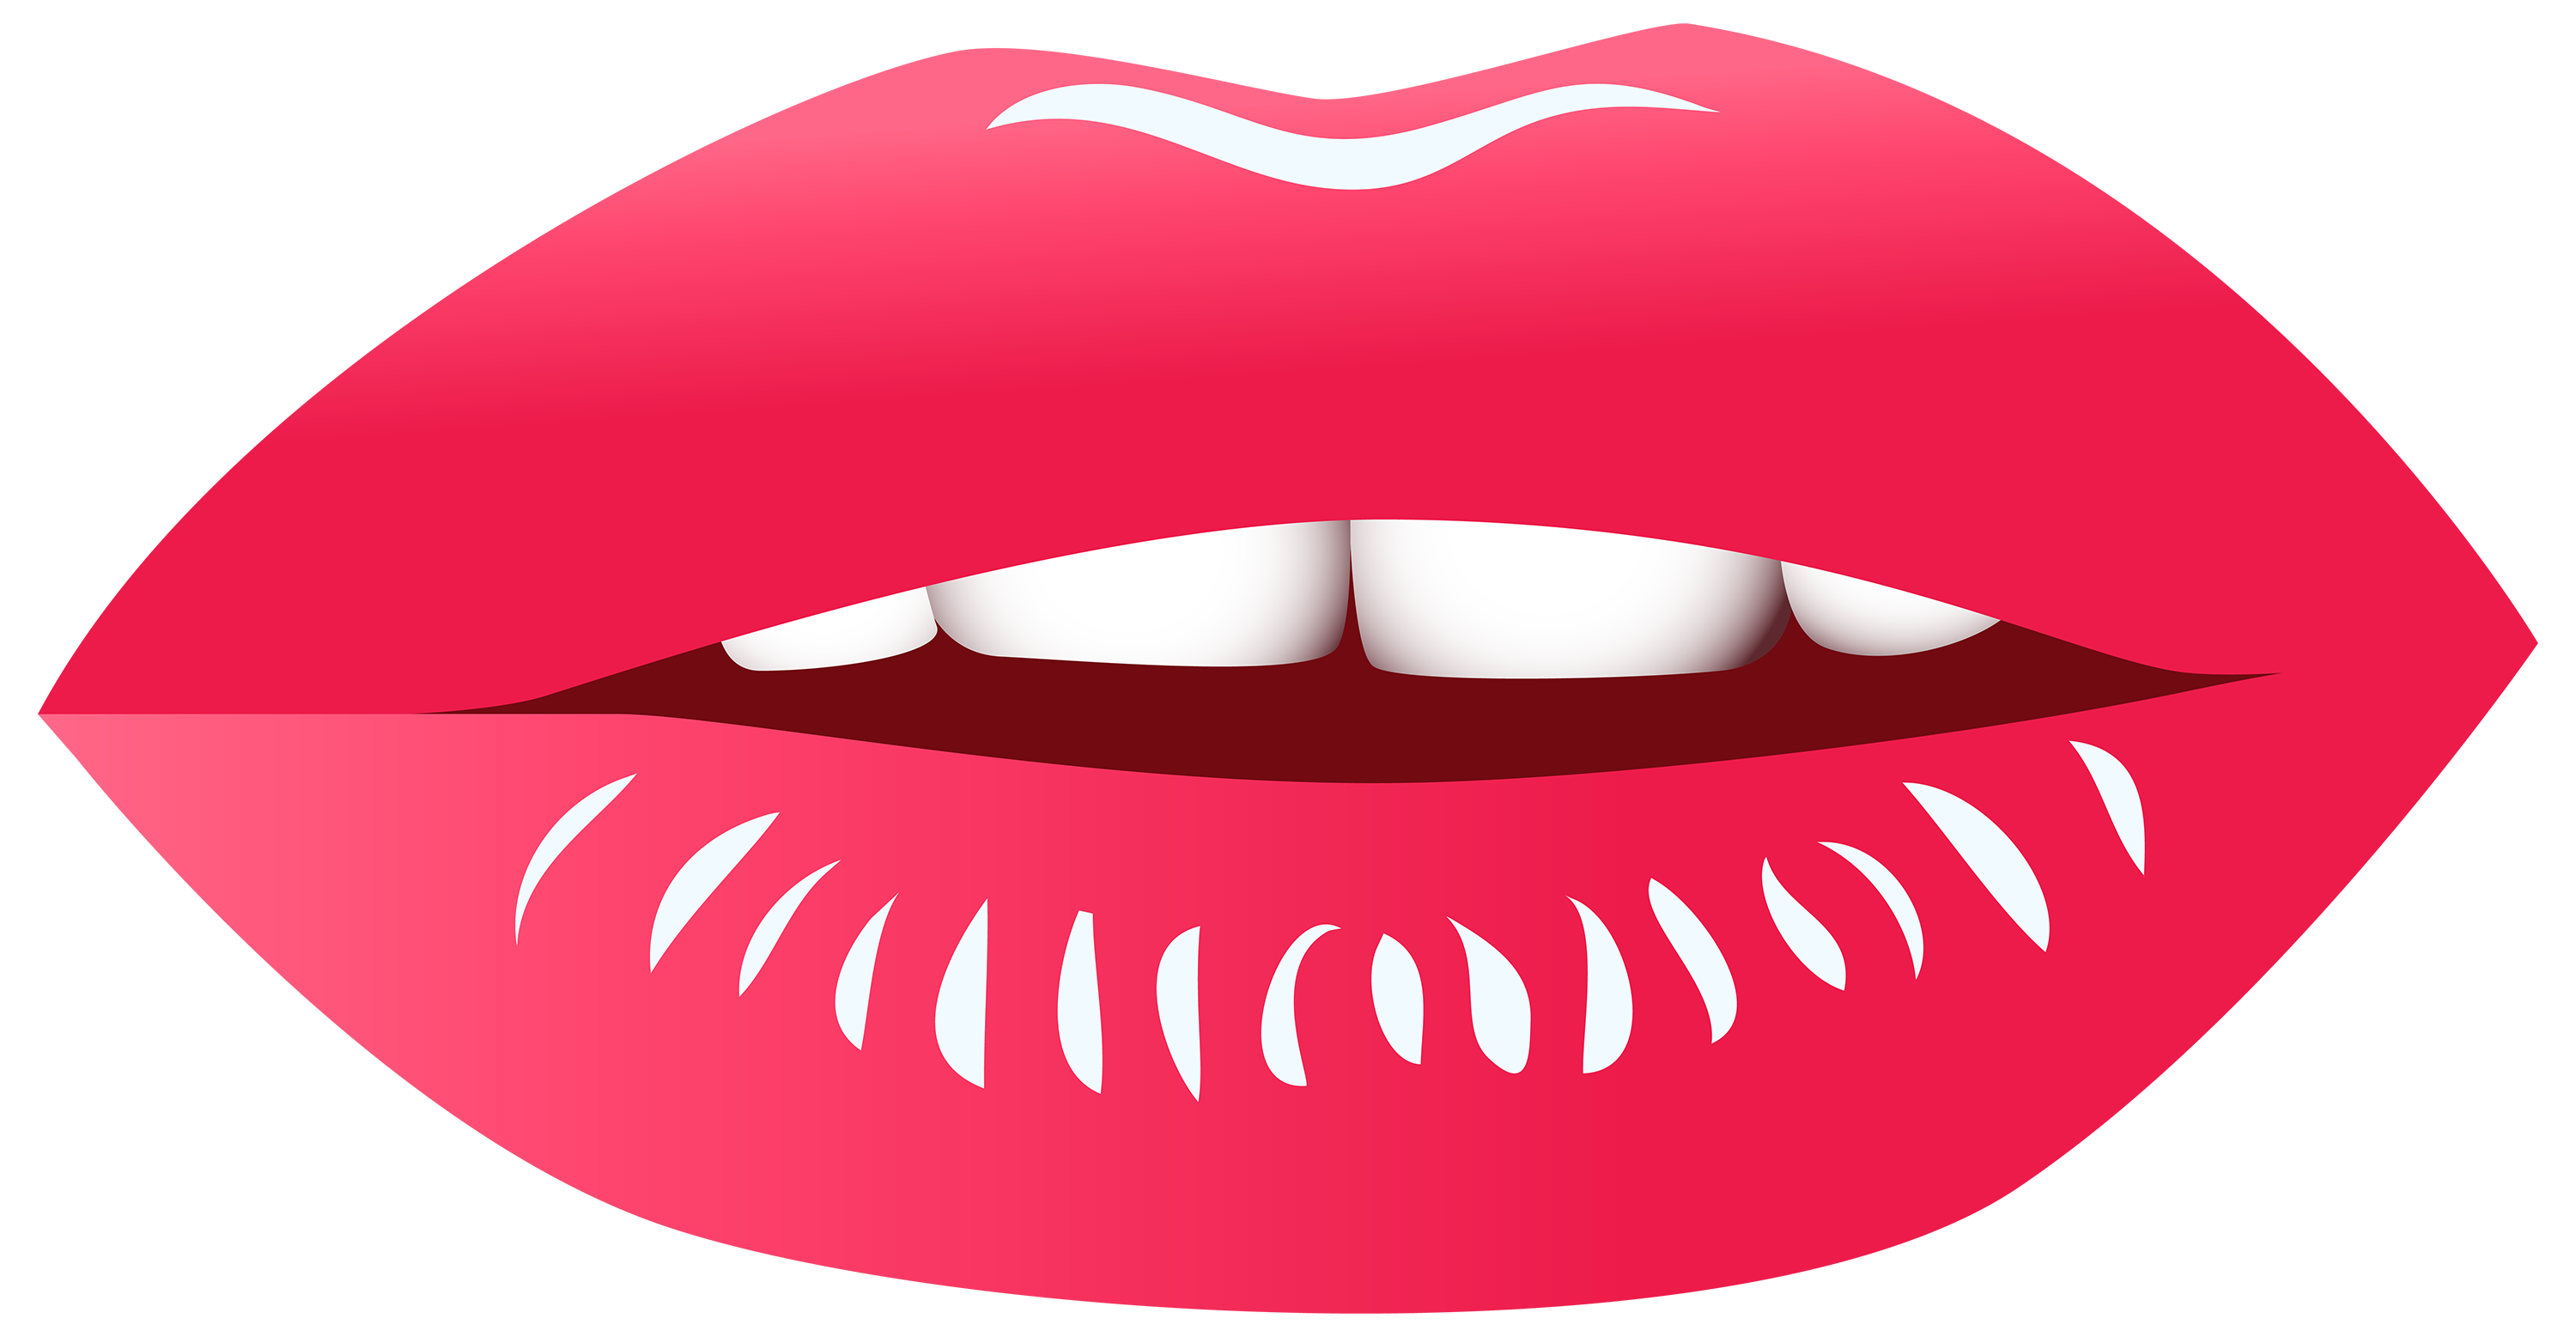 Mouth clipart. Png best web